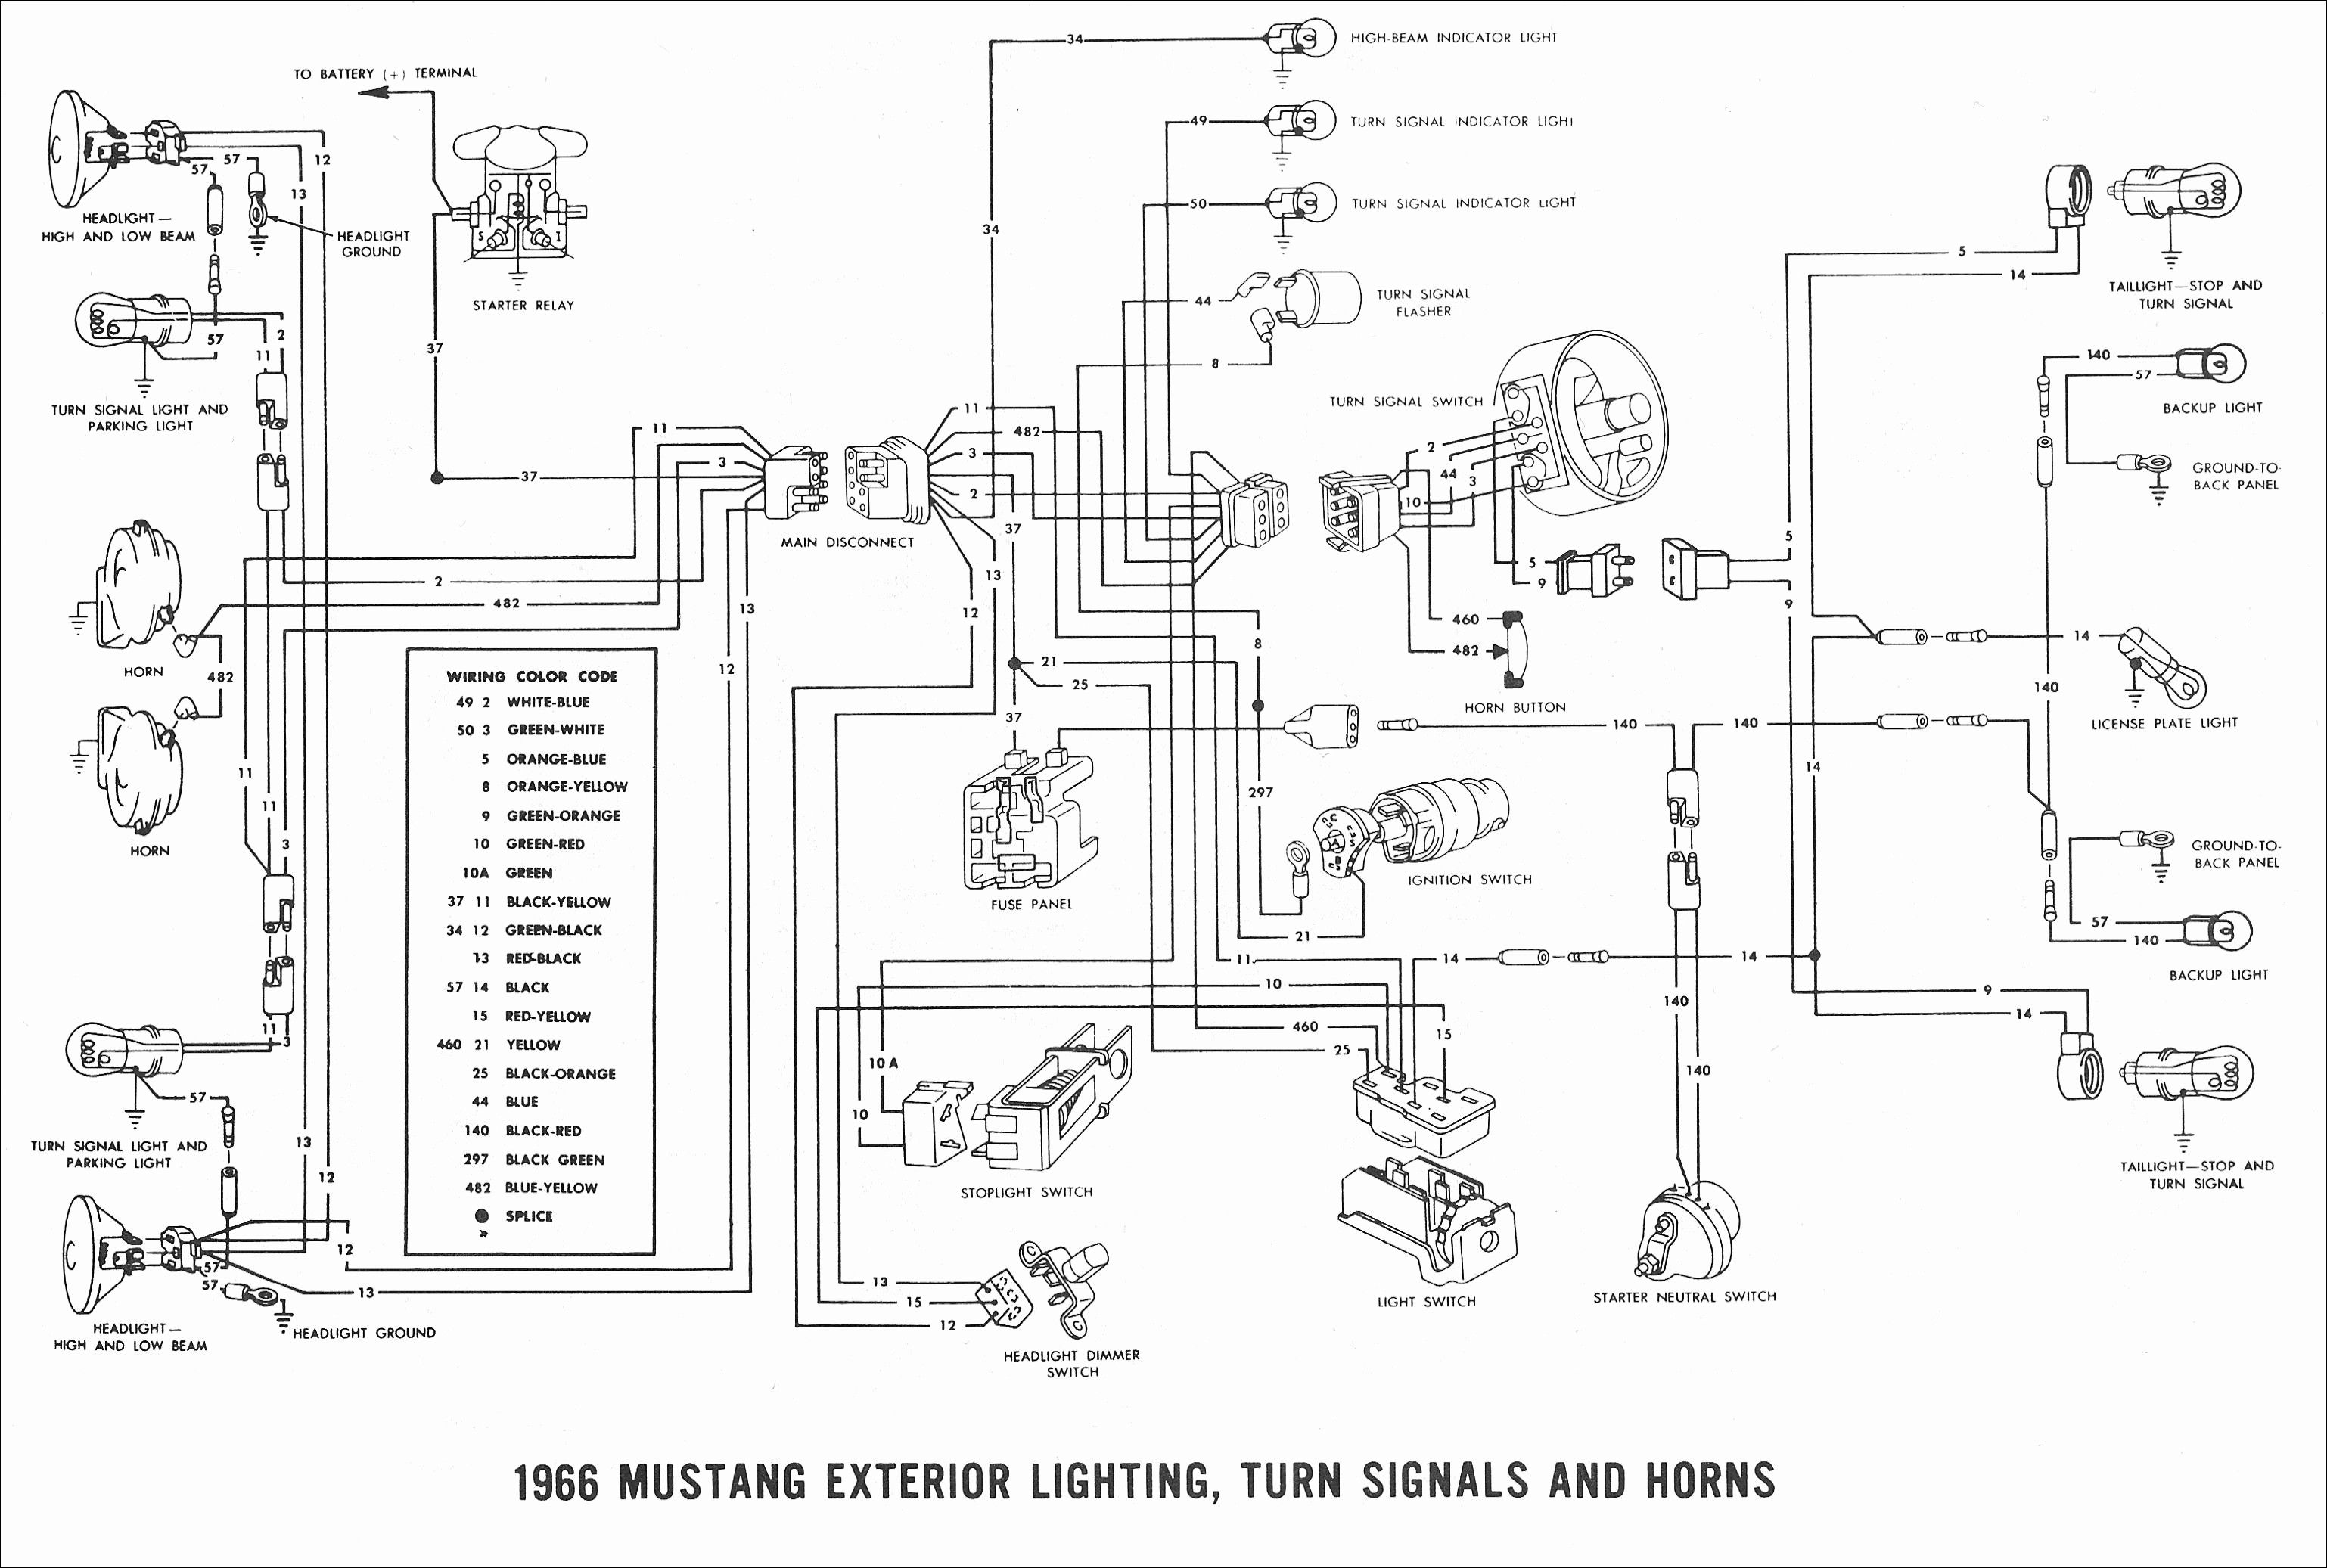 Mustang Wiring Diagram Best Of In 2020 Diagram Electrical Wiring Diagram Mustang